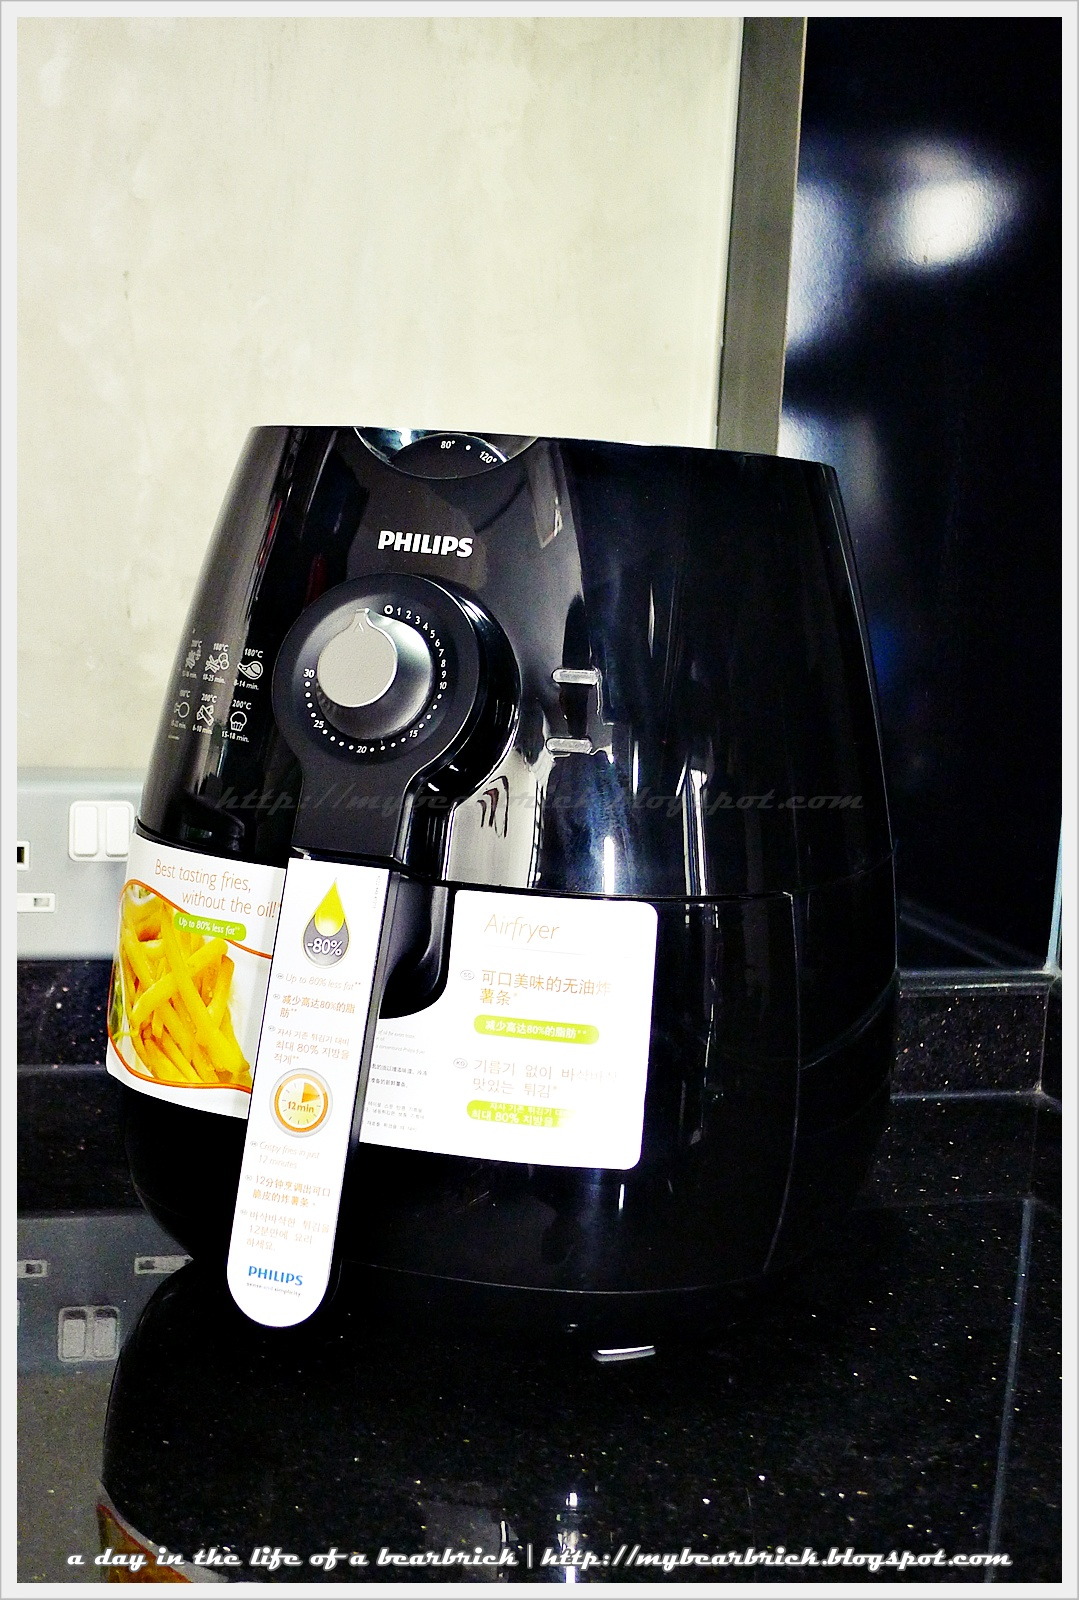 A day in the life of a be rbrick philips air fryer the Modern home air fryer